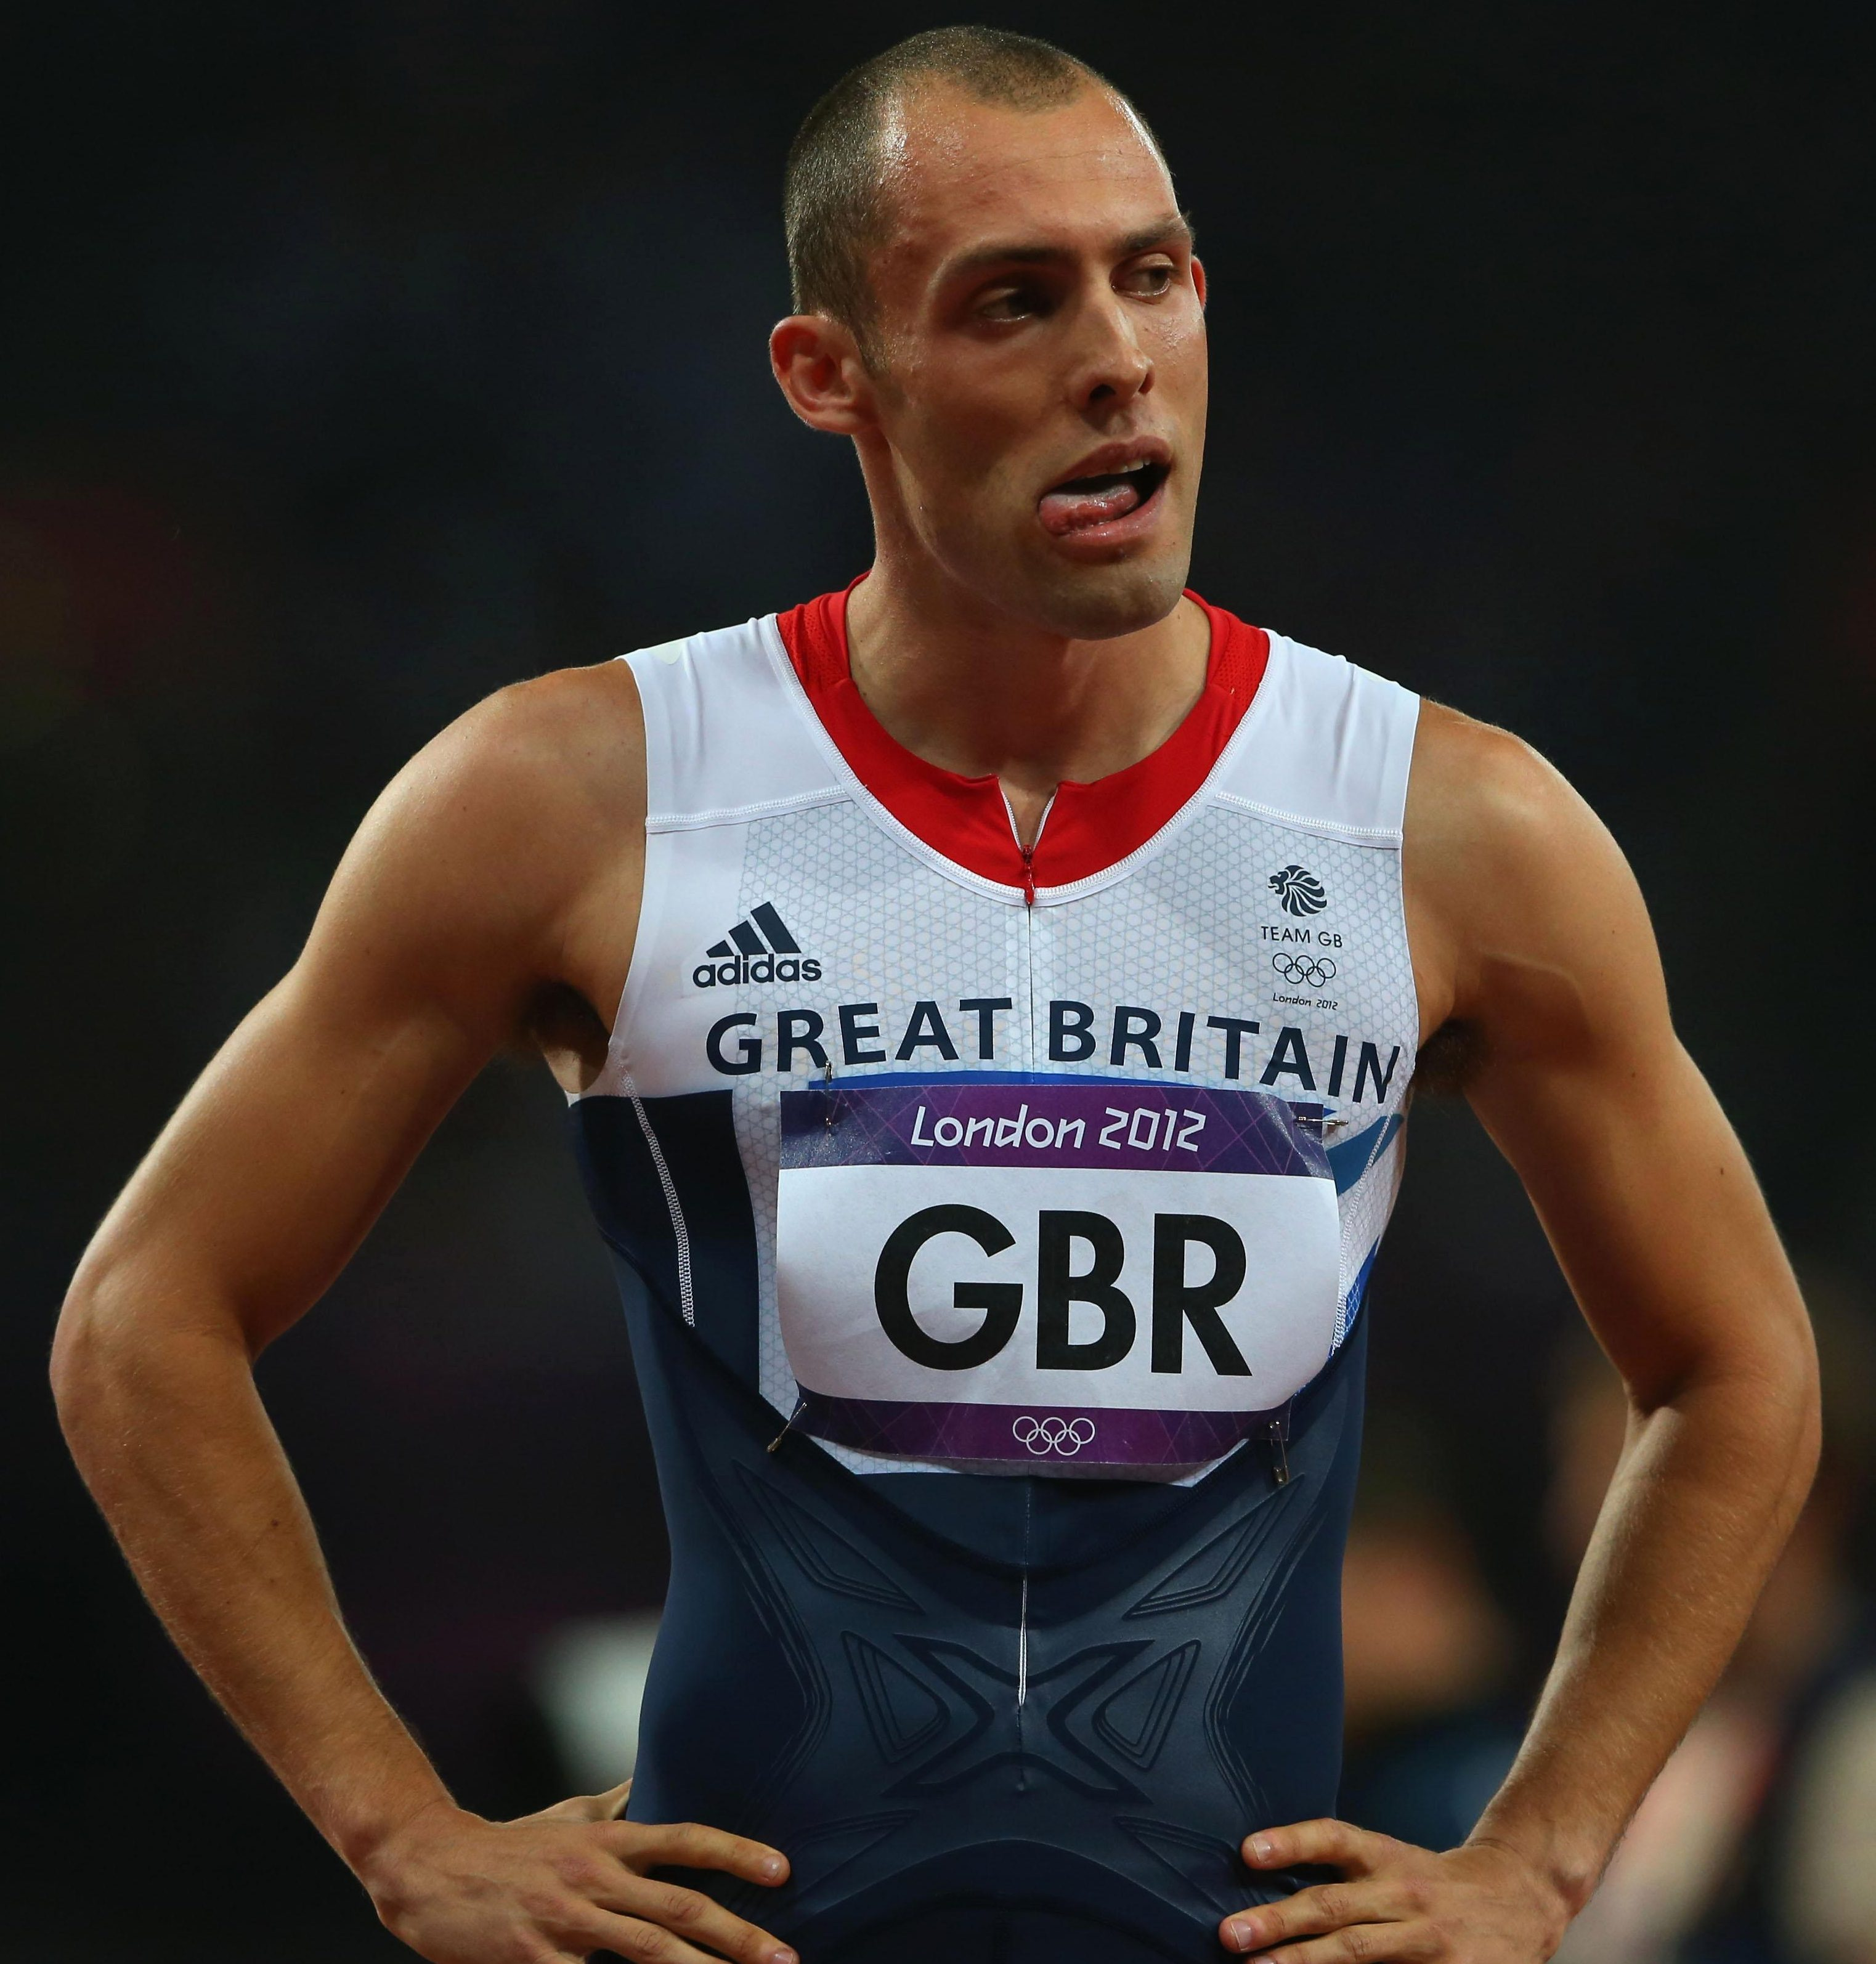 Former world 400m hurdles champion Dai Greene has also been named in the Team Wales squad